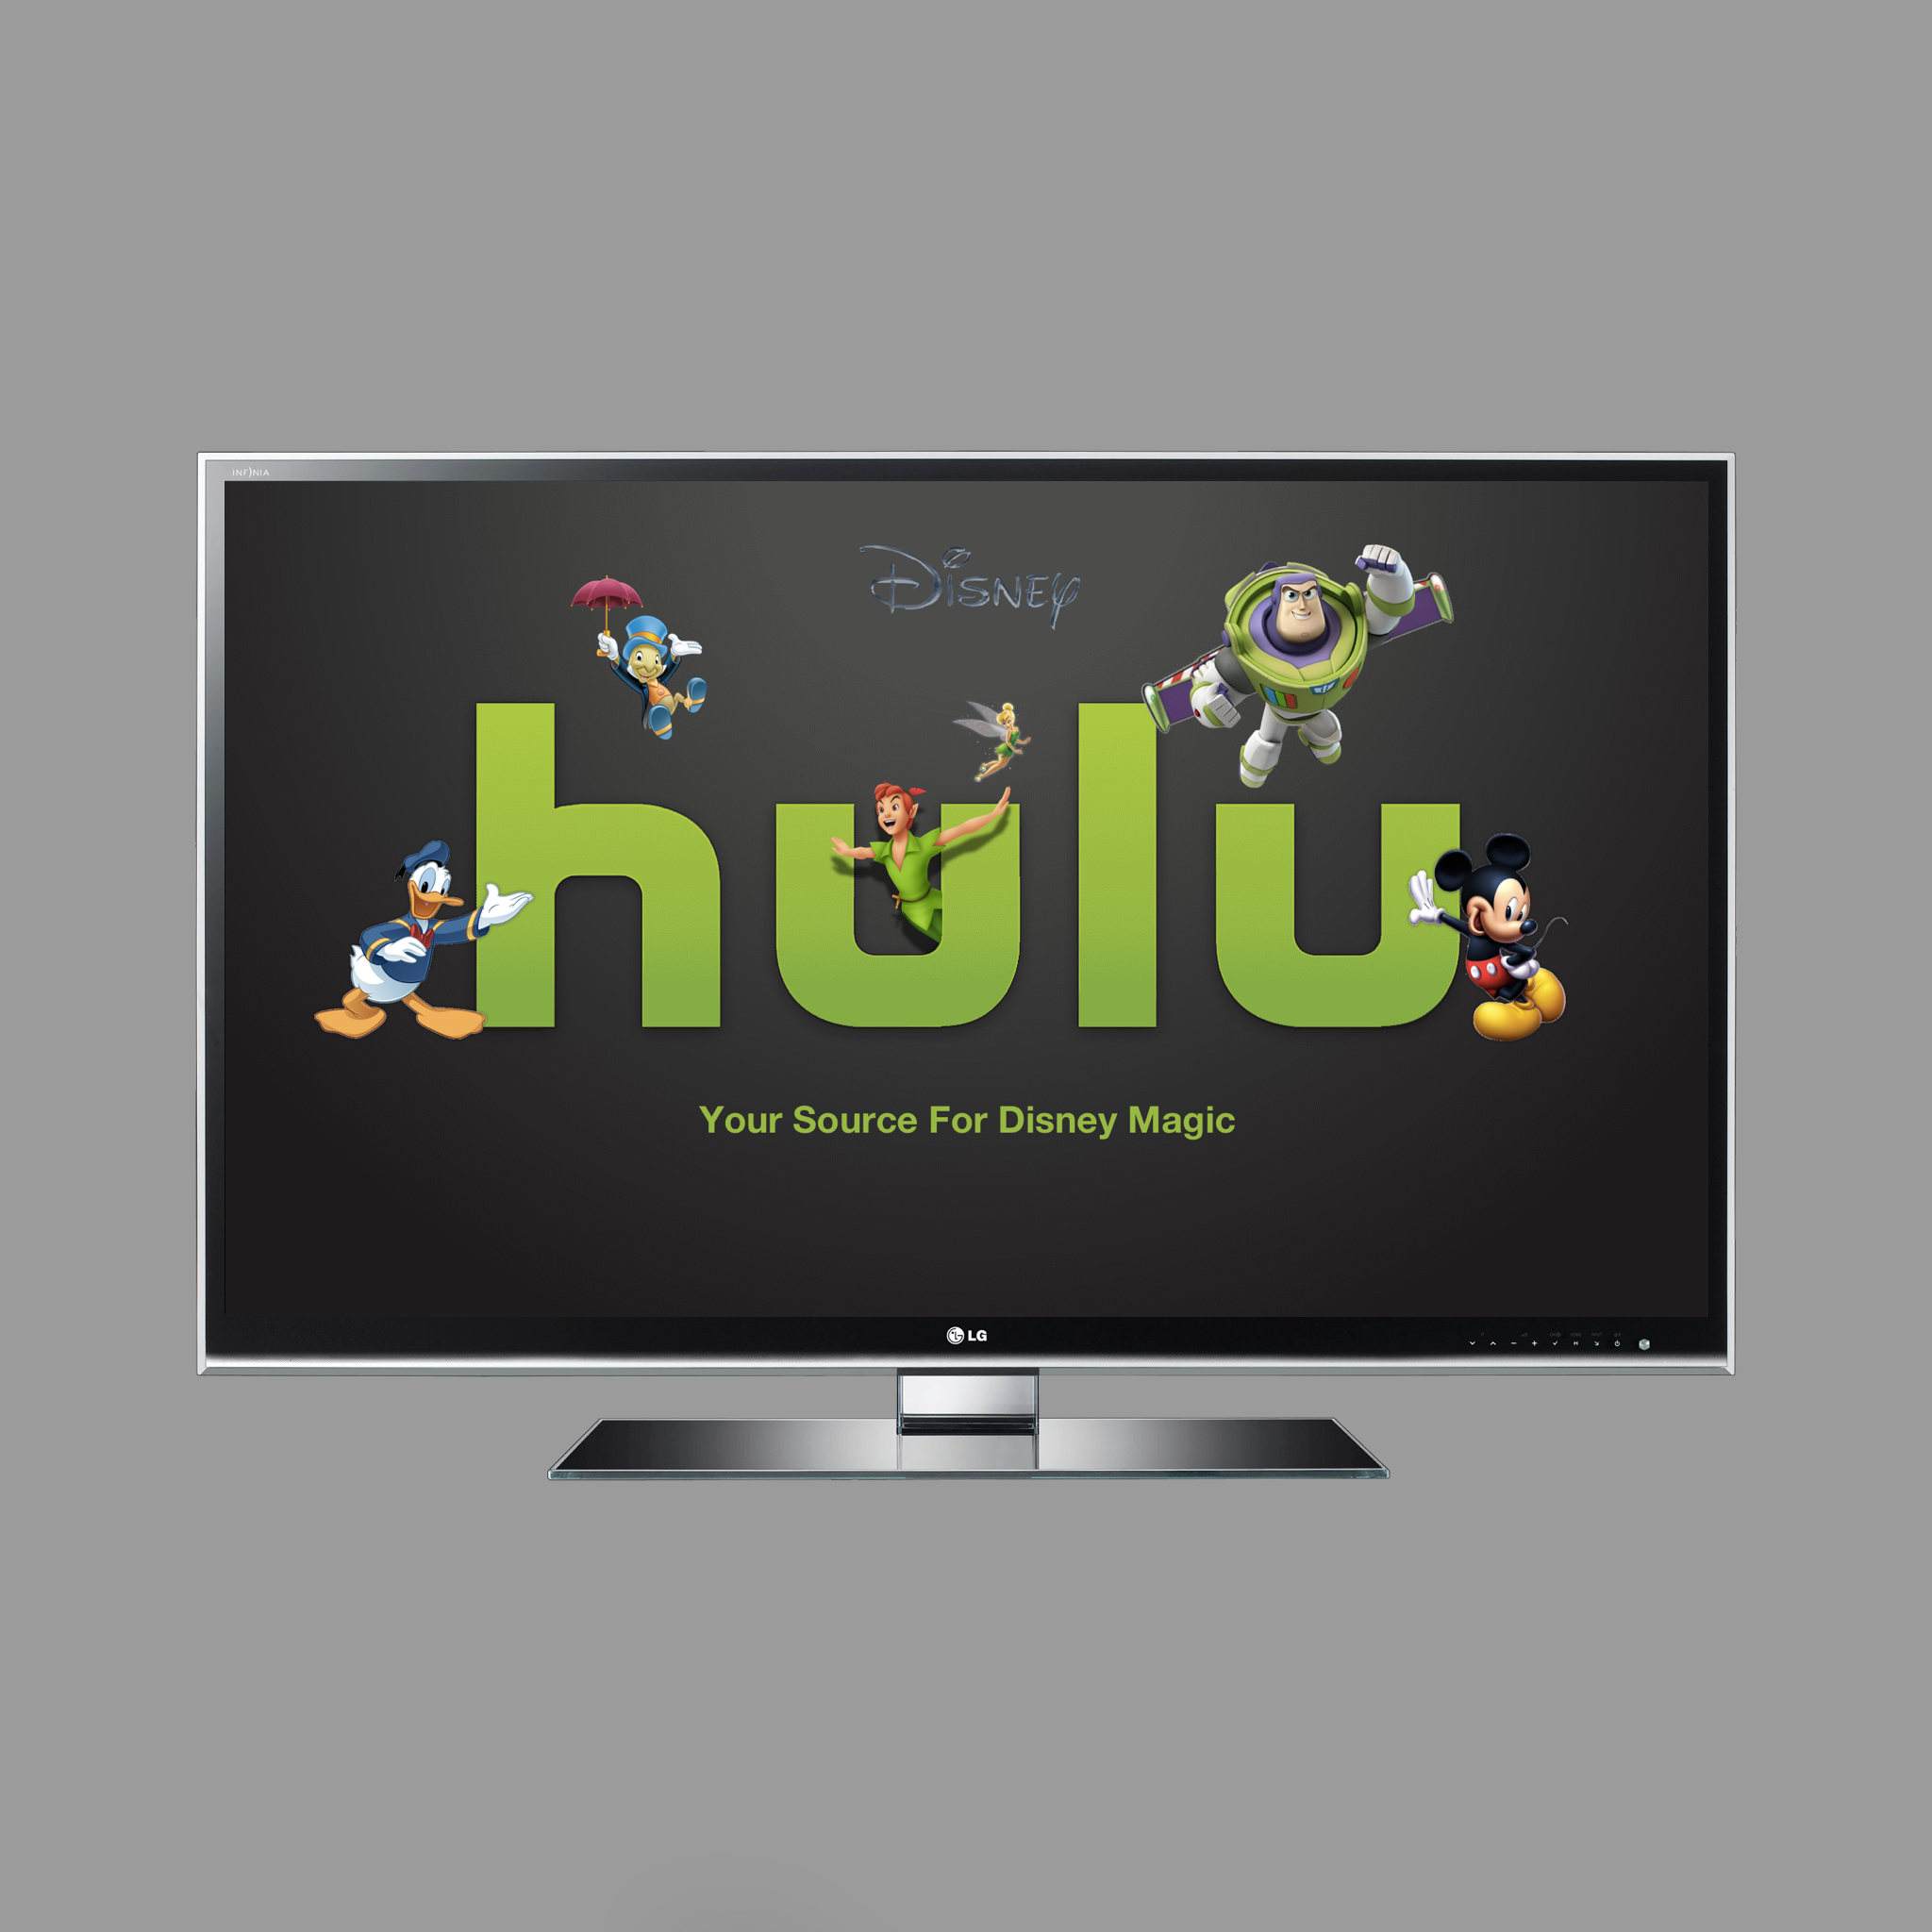 Disney On Hulu- Concept Piece   Now that Disney owns 60%of Hulu they have a particular invested interest in its success and for advertisement.I turned an ordinary logo into a tool Hulu could could use to promote themselves as a source for Disney entertainment.